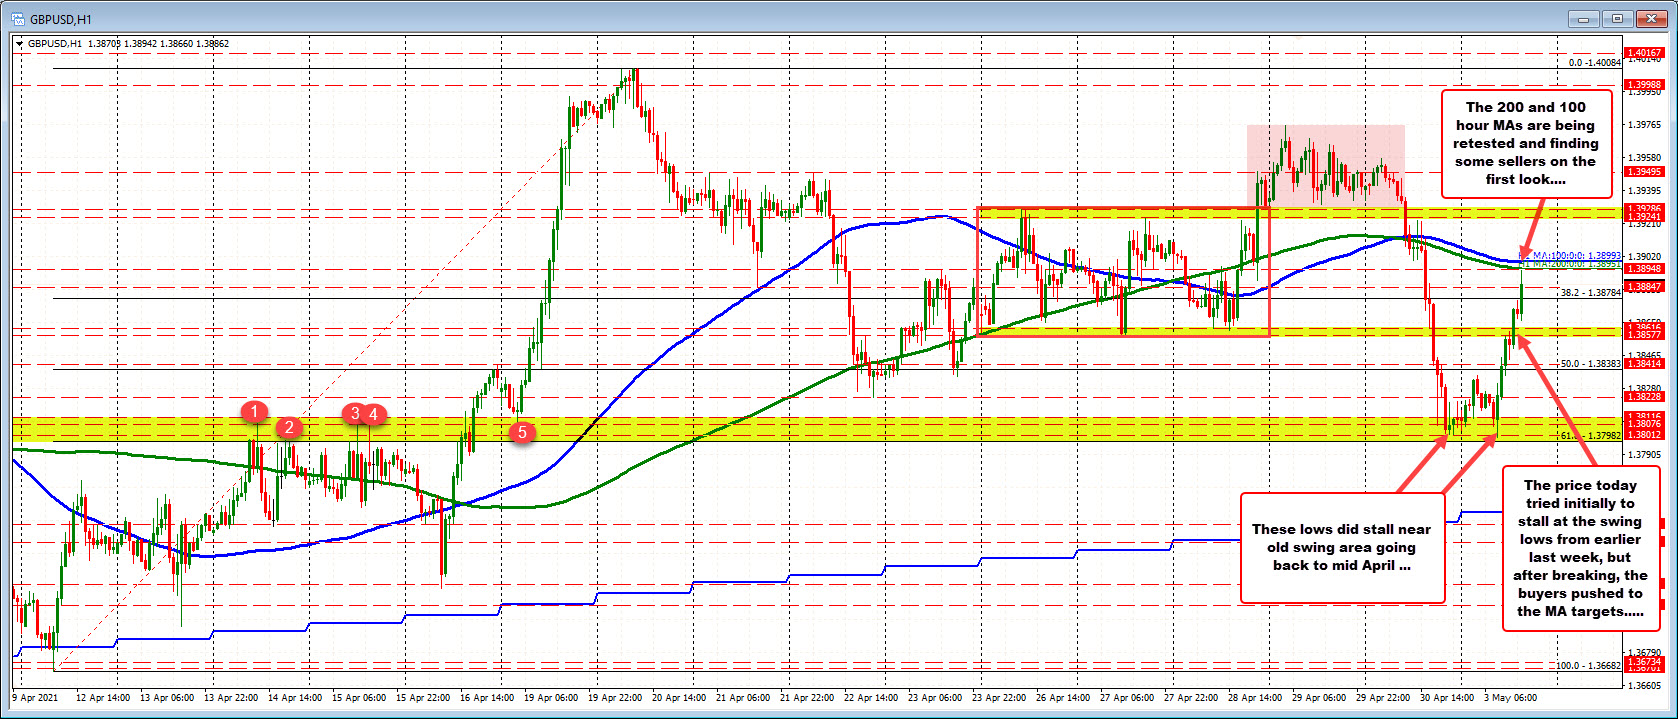 The 100/200 hour MA at 1.3895 to 1.38993